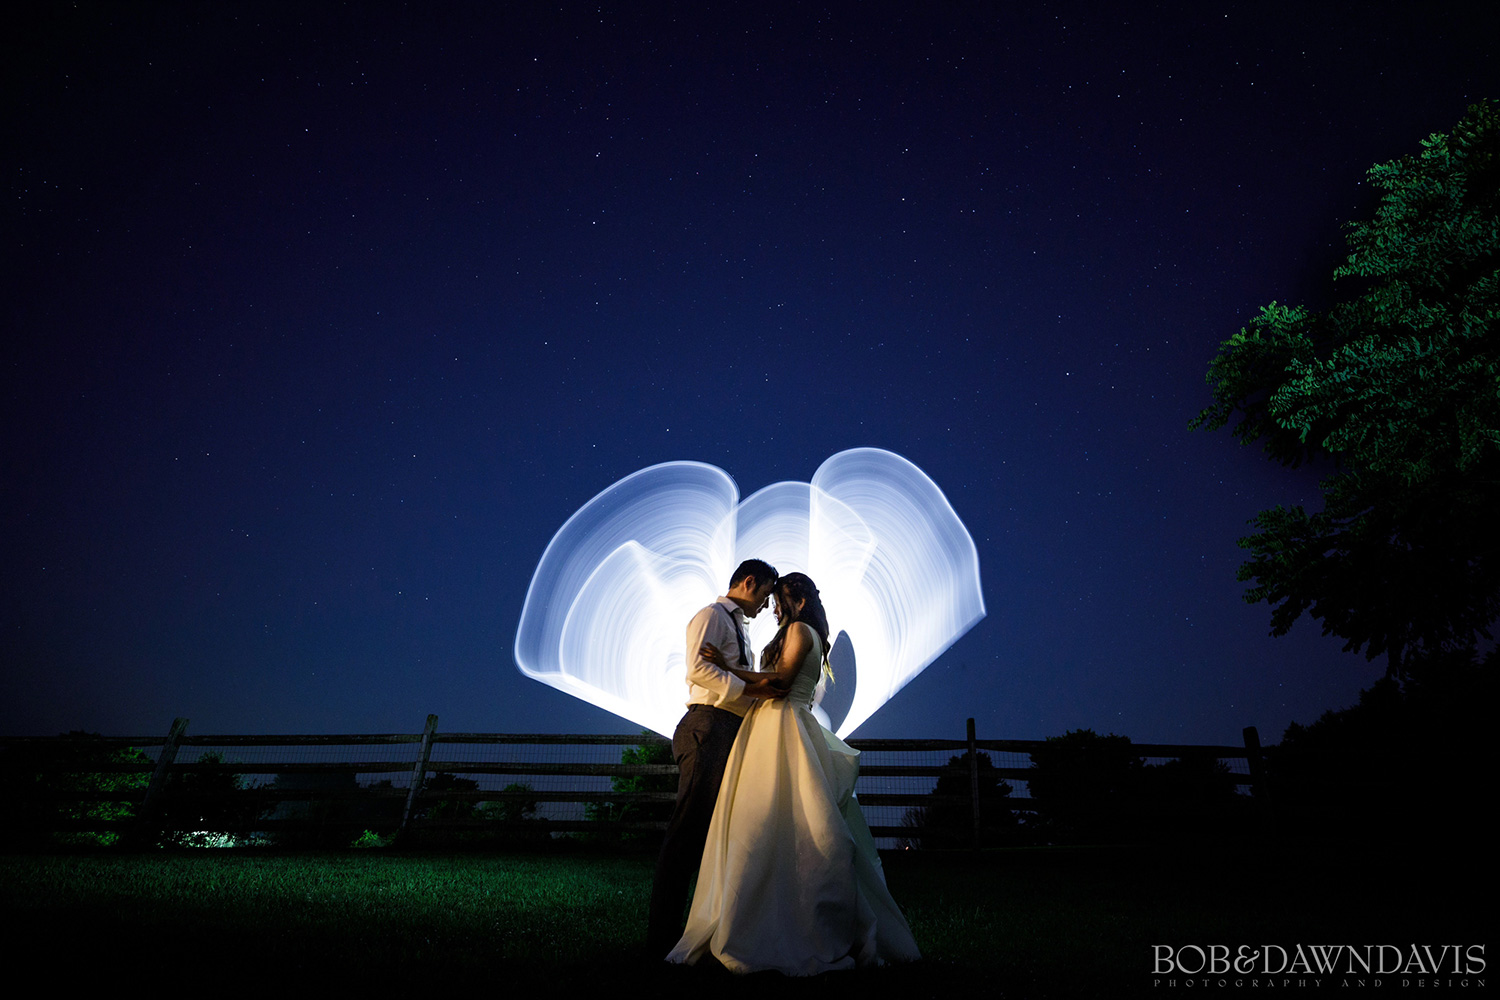 Light painting behind a bride and groom at a wedding in the evening. Photo by Photographers Bob and Dawn Davis